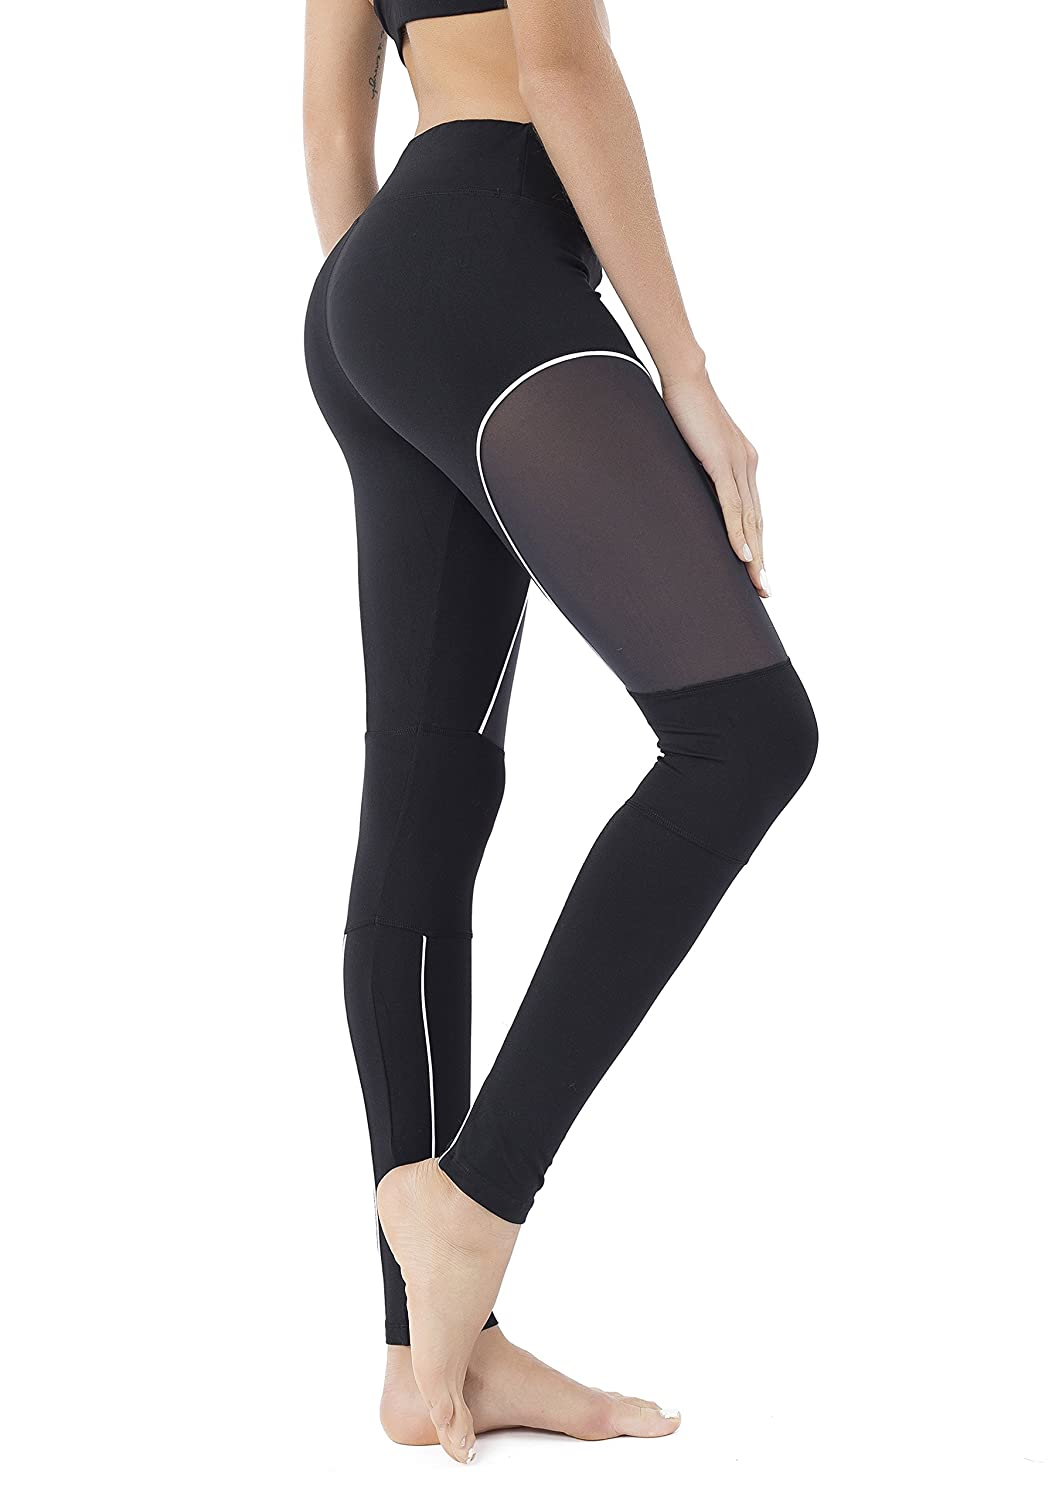 8eb2426560 The High Waist Tummy Control Power Flex Leggings by Queenie Ke are the  affordable yoga pants whether you are working out in the gym or ...